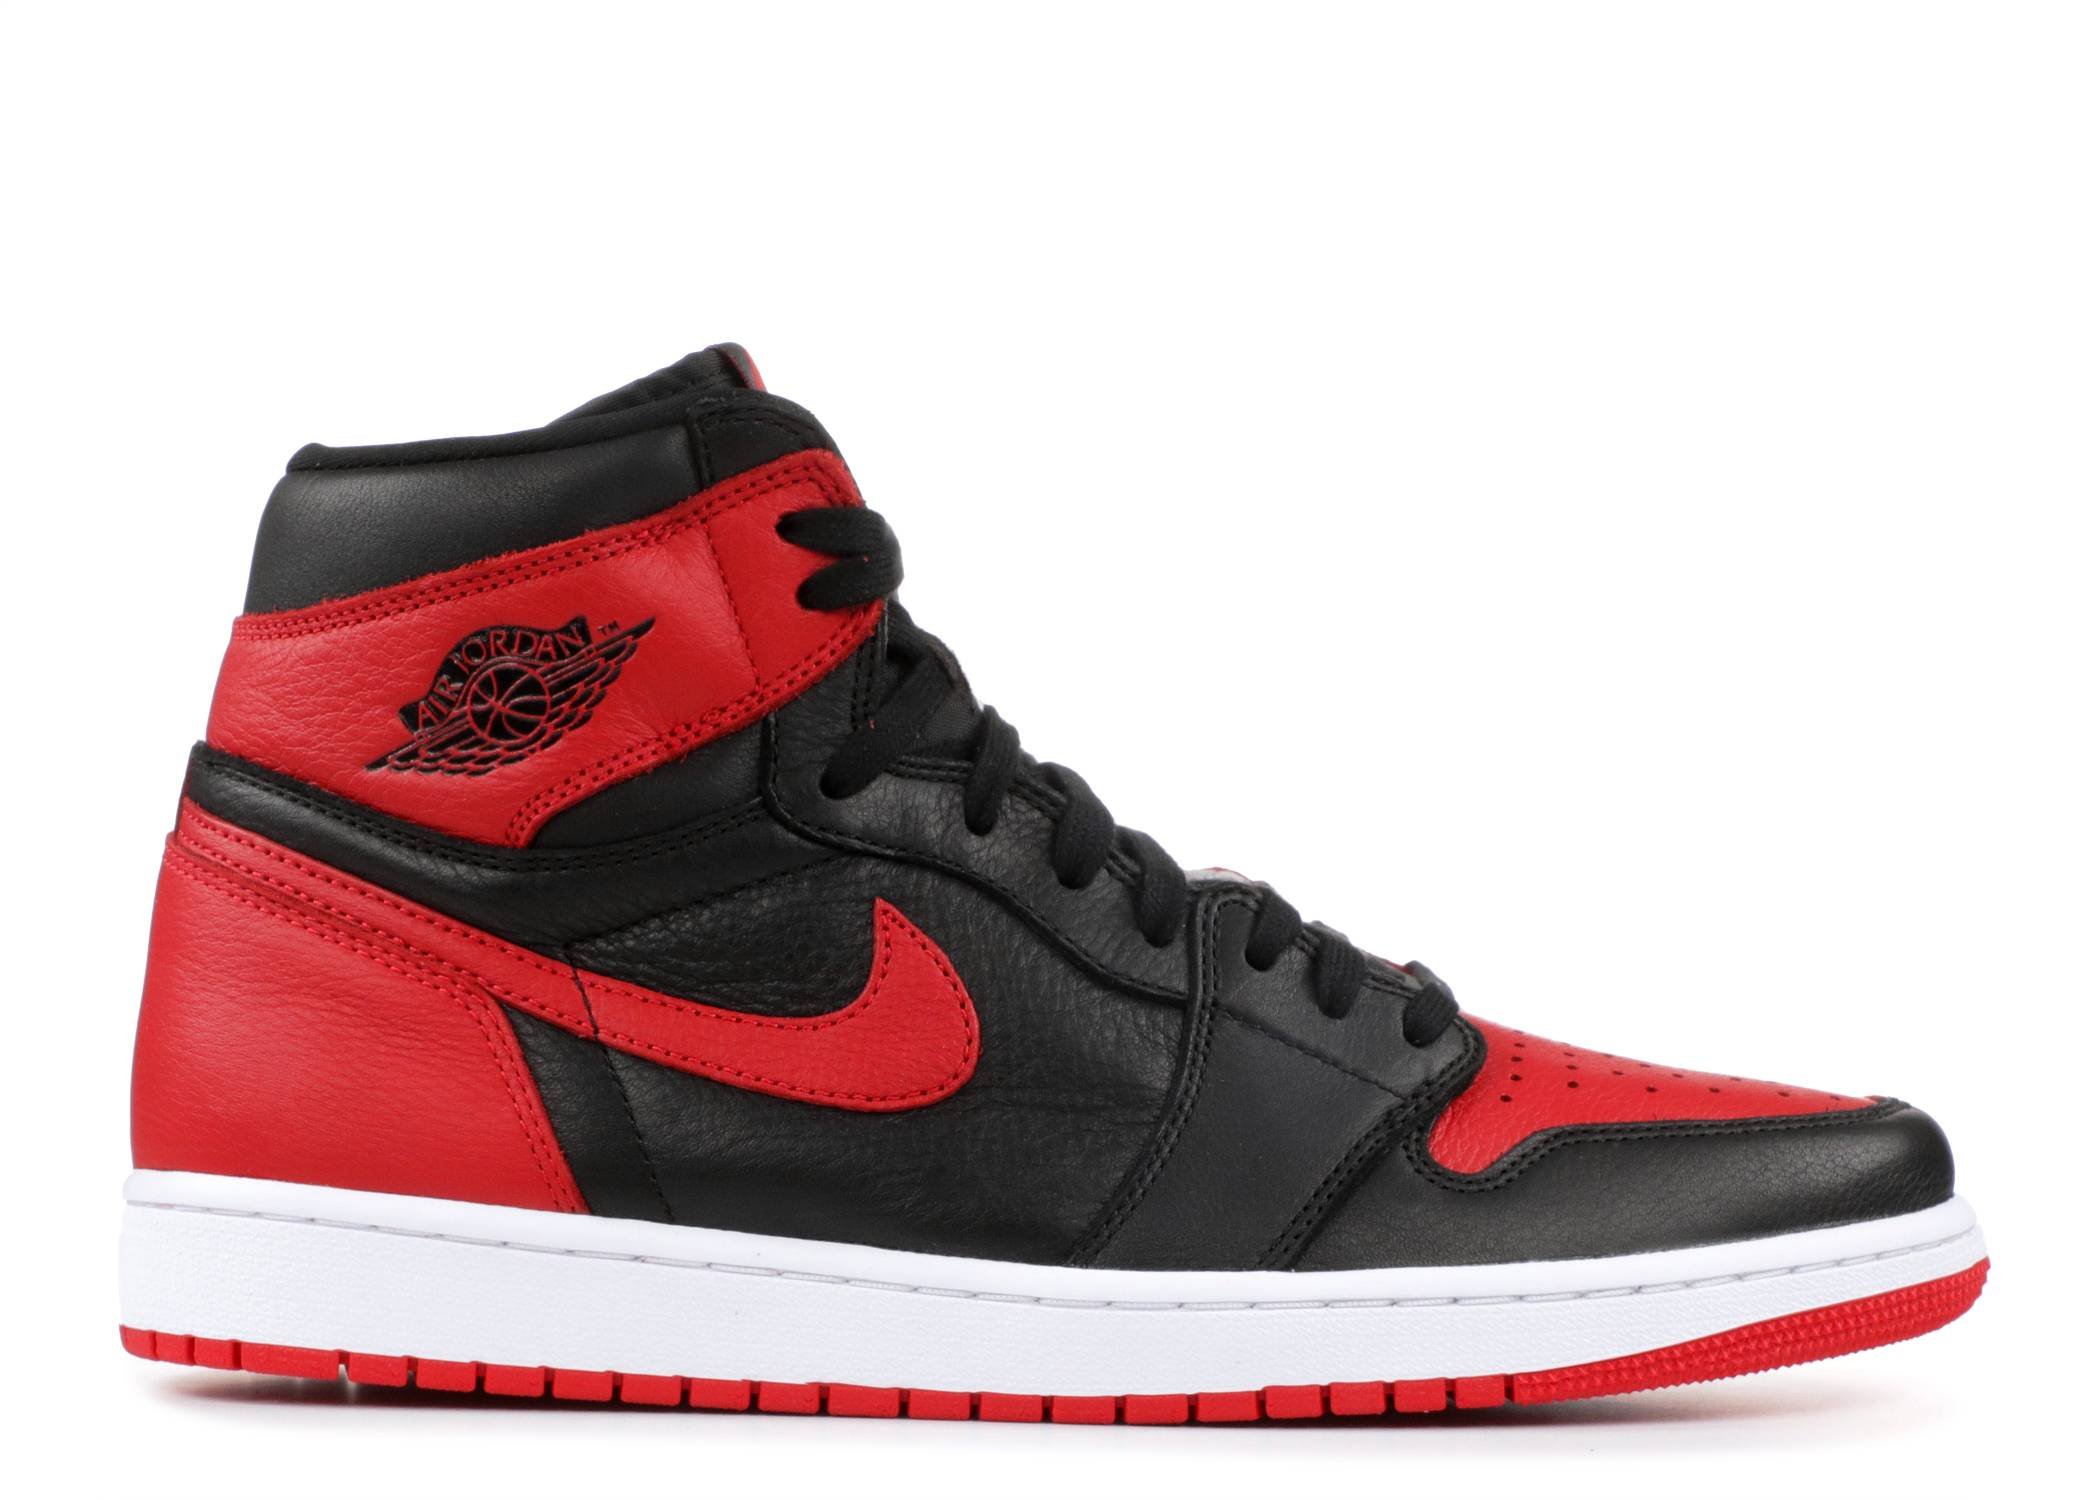 huge selection of 7bcf1 9cdef Air Jordan 1 Retro High Og Nrg